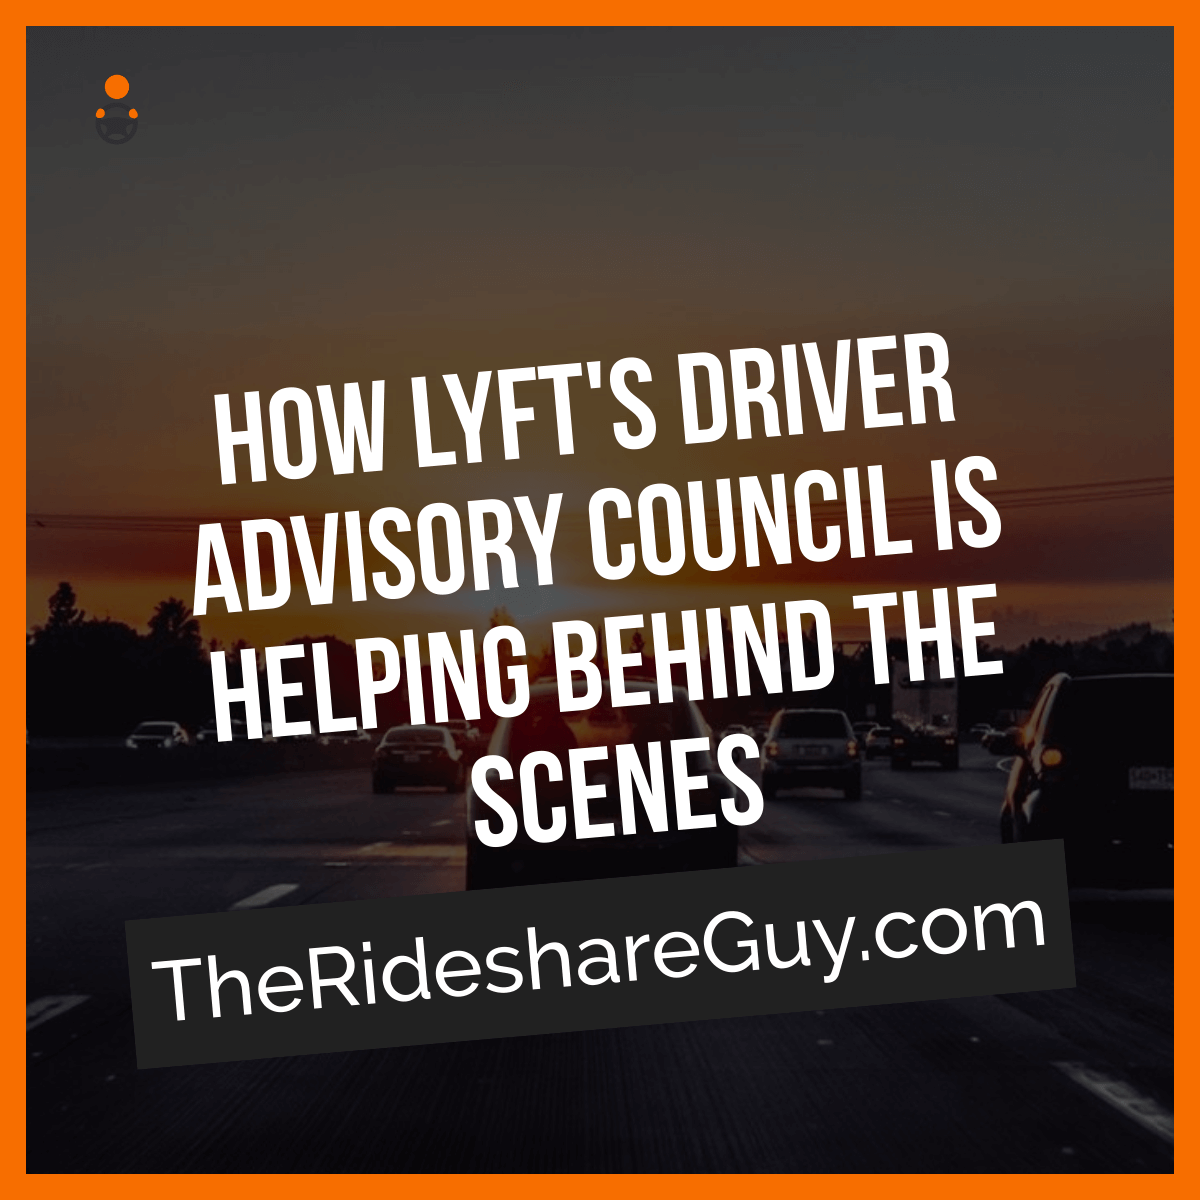 Lyft's Driver Advisory Council Is Helping Lyft Build Better Things For Drivers